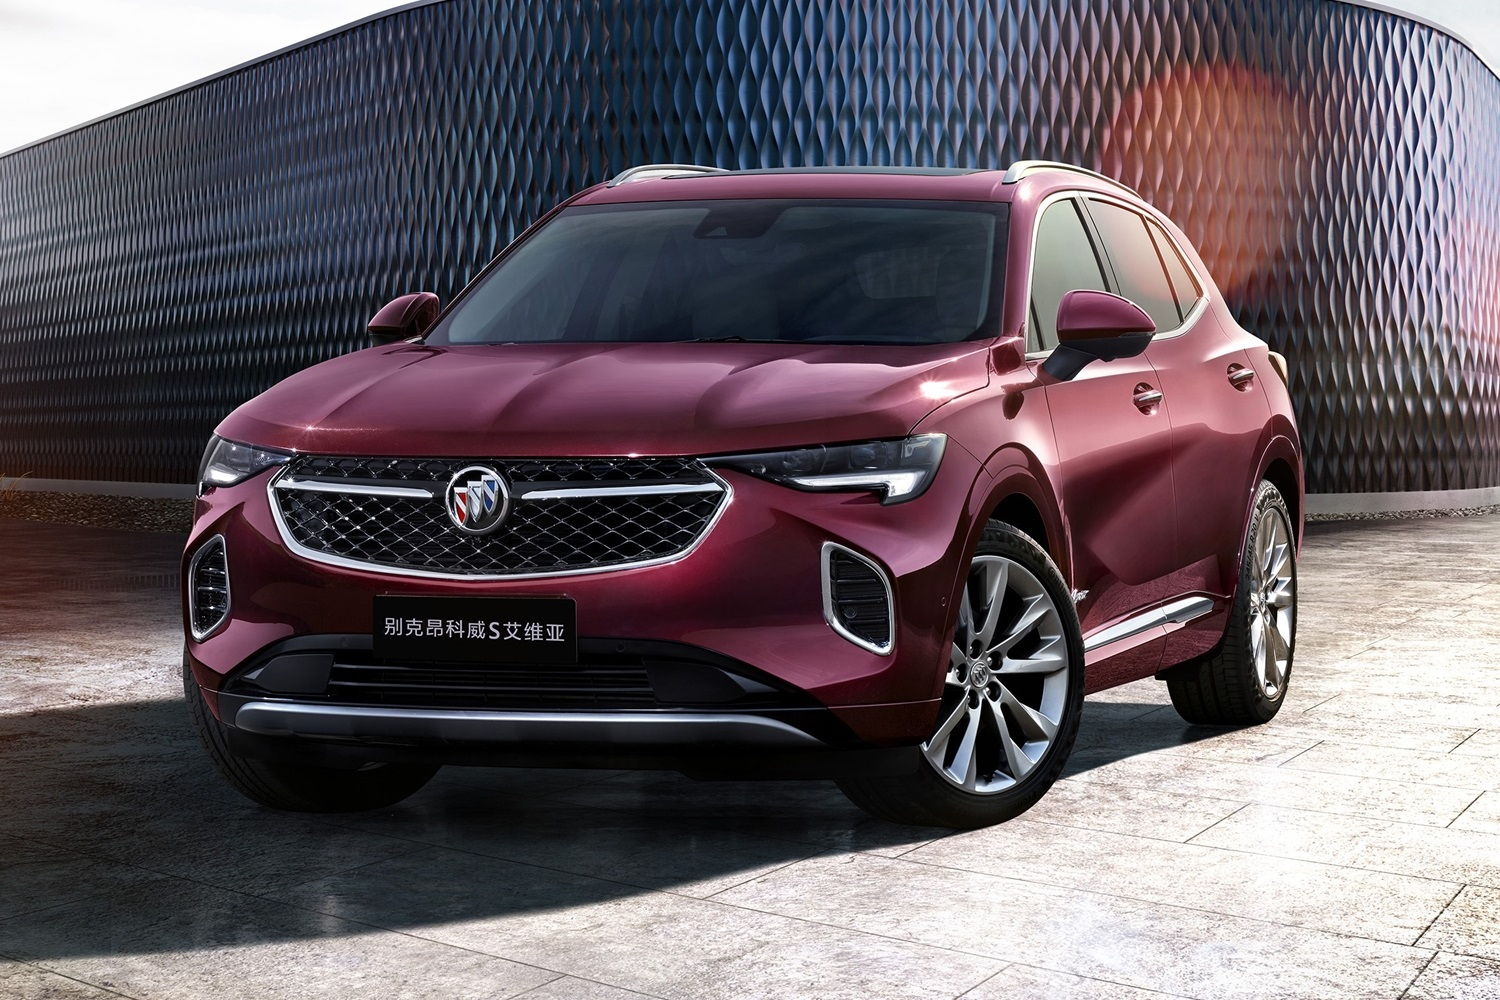 Range-Topping 2021 Buick Envision Avenir Revealed | Gm Authority New 2021 Buick Cascada Used, 0-60, Colors